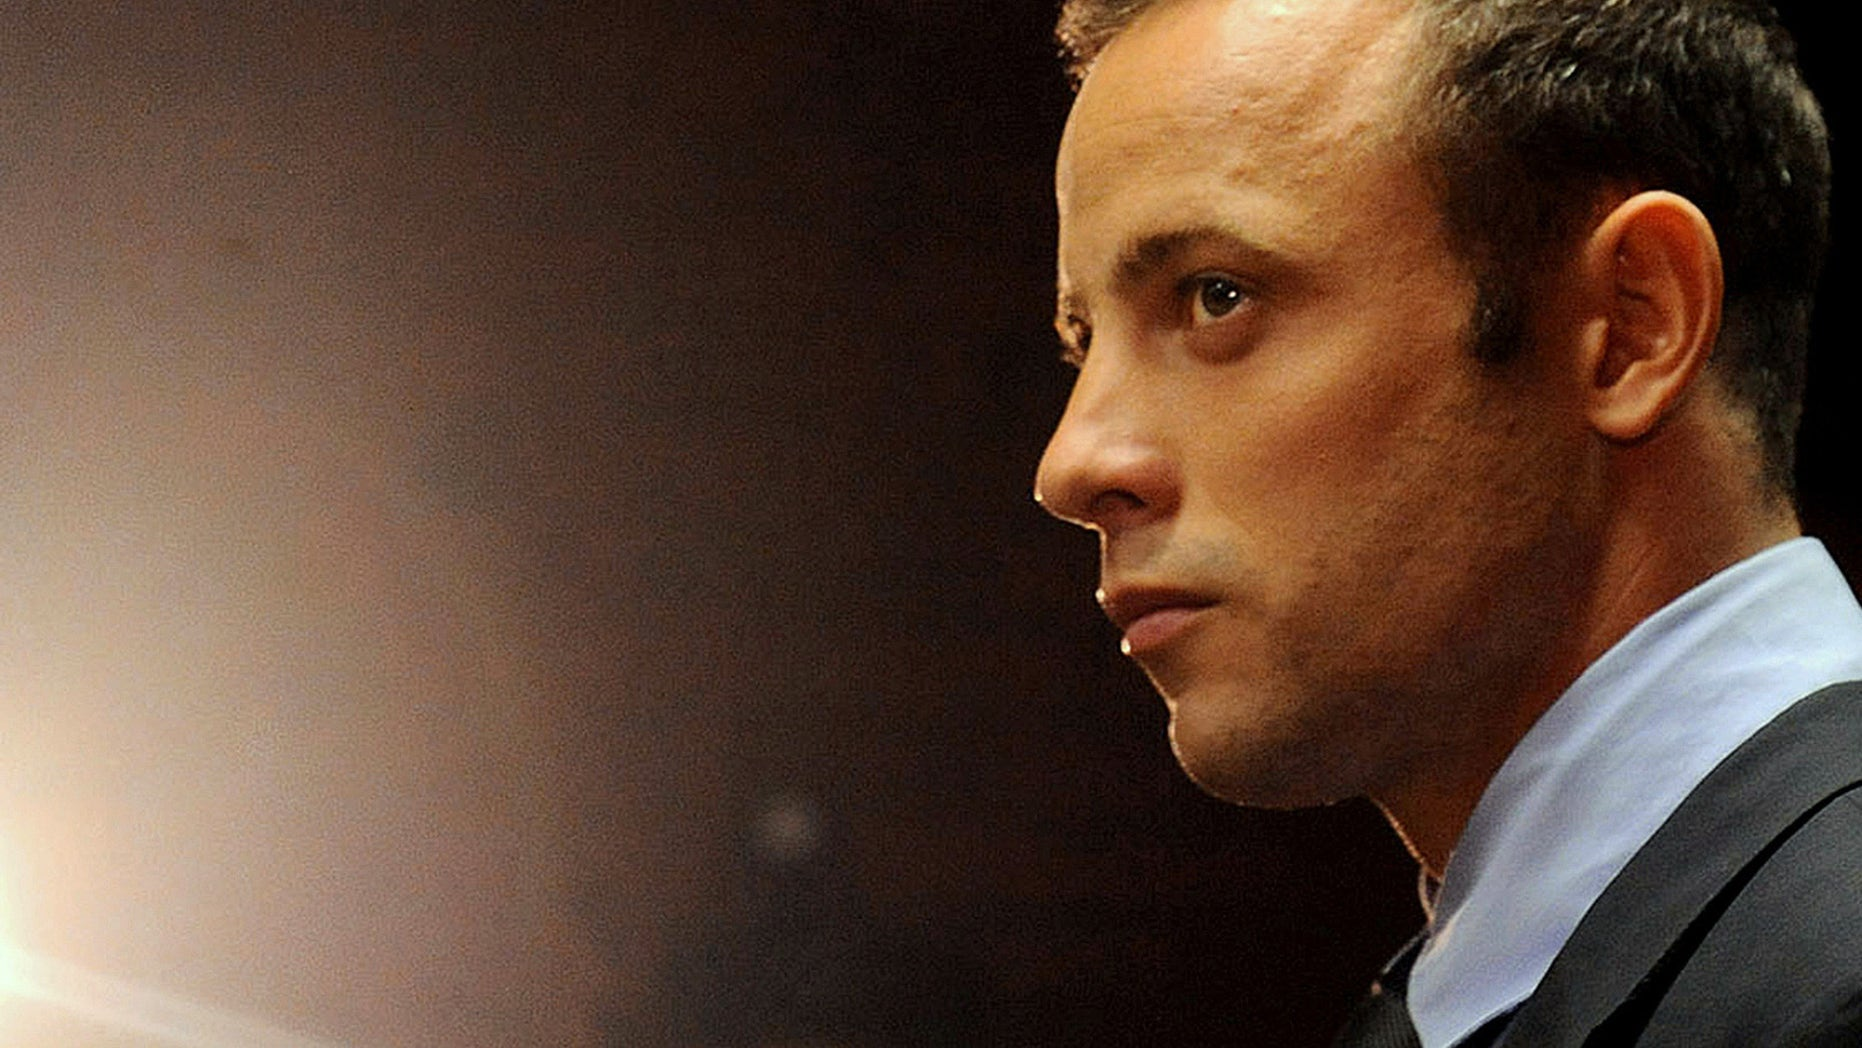 FILE - In this photo taken Friday, Feb. 26, 2013 file photo, Olympic athlete, Oscar Pistorius appears in court for his bail hearing after being charged with the shooting of his girlfriend, Reeva Steenkamp, in Pretoria, South Africa.  Oscar Pistorius and Caster Semenya have been left off a list of athletes to receive funding by the South African Olympic Committee ahead of the 2016 Rio Games. South African Sports Confederation and Olympic Committee chief executive Tubby Reddy says Pistorius wasn't included on the Operation Excellence support program because of his decision not to compete this year to concentrate on his murder trial. He's accused of shooting his girlfriend. (AP Photo/Themba Hadebe, File)